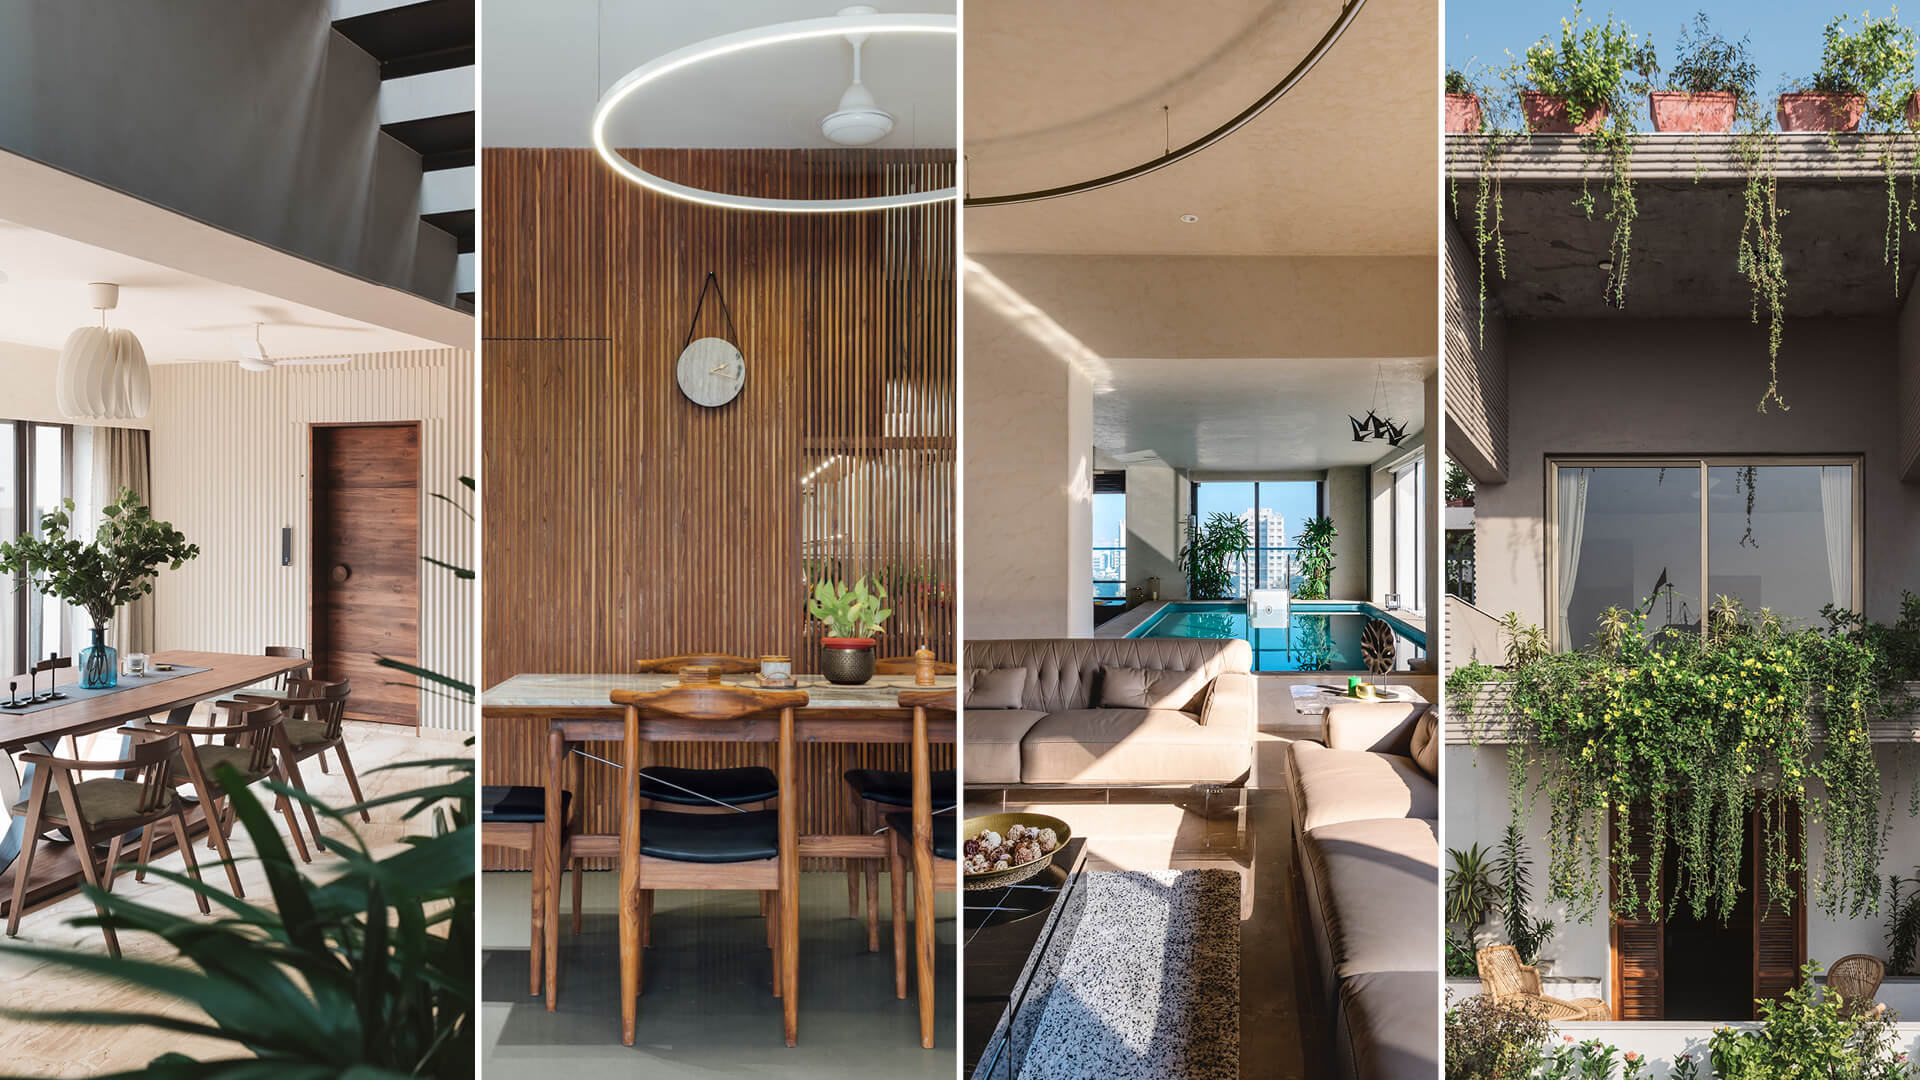 Residential projects in India by Studio Neogenesis (L-R): Sarpanch House – Dining Area; Sattva – Dining Area; Pool House – Living Room, and Jungalow House - Elevation | Neogenesis + Studi0261 | India | STIRworld